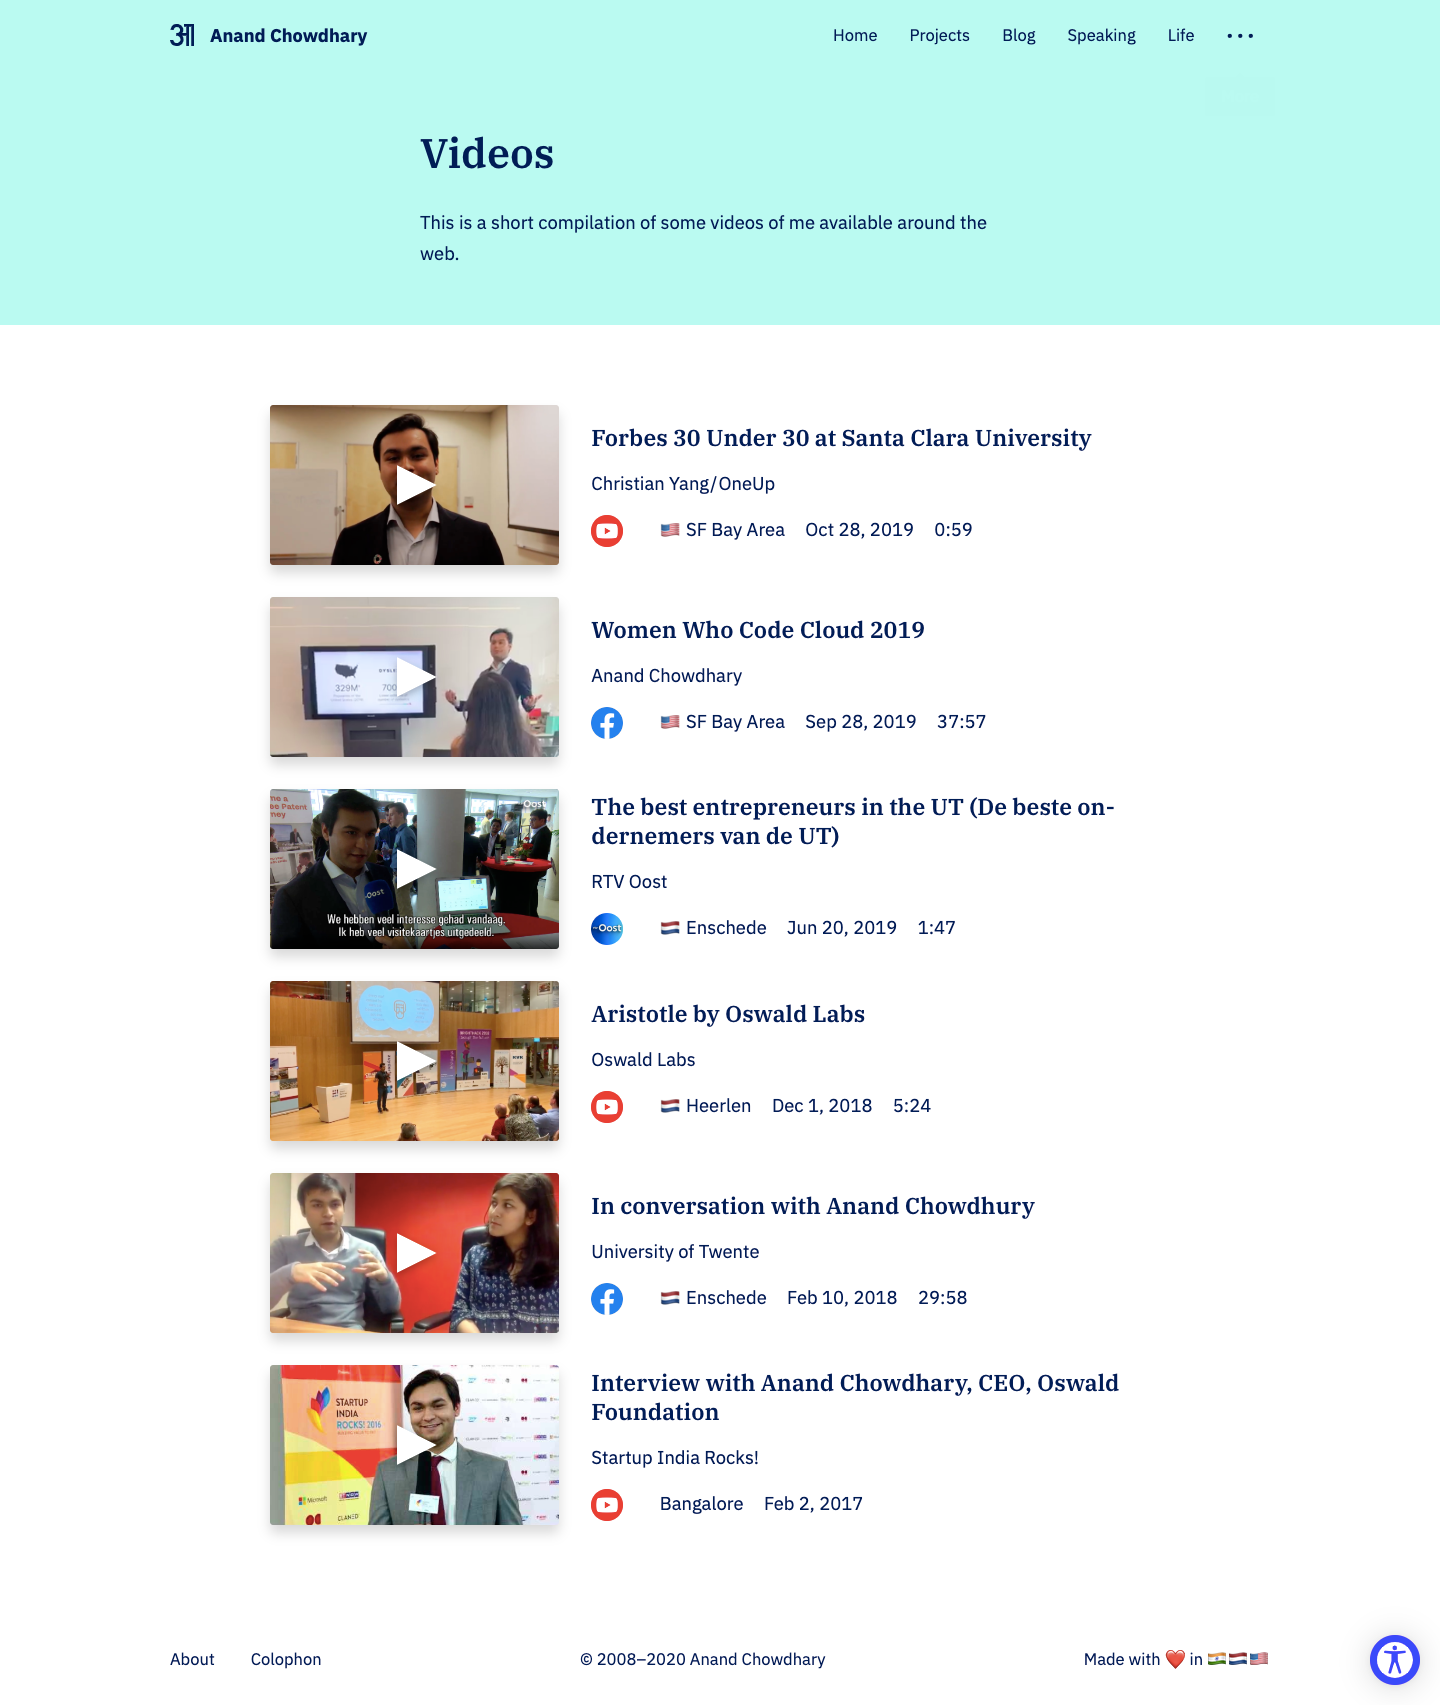 Screenshot of Videos page